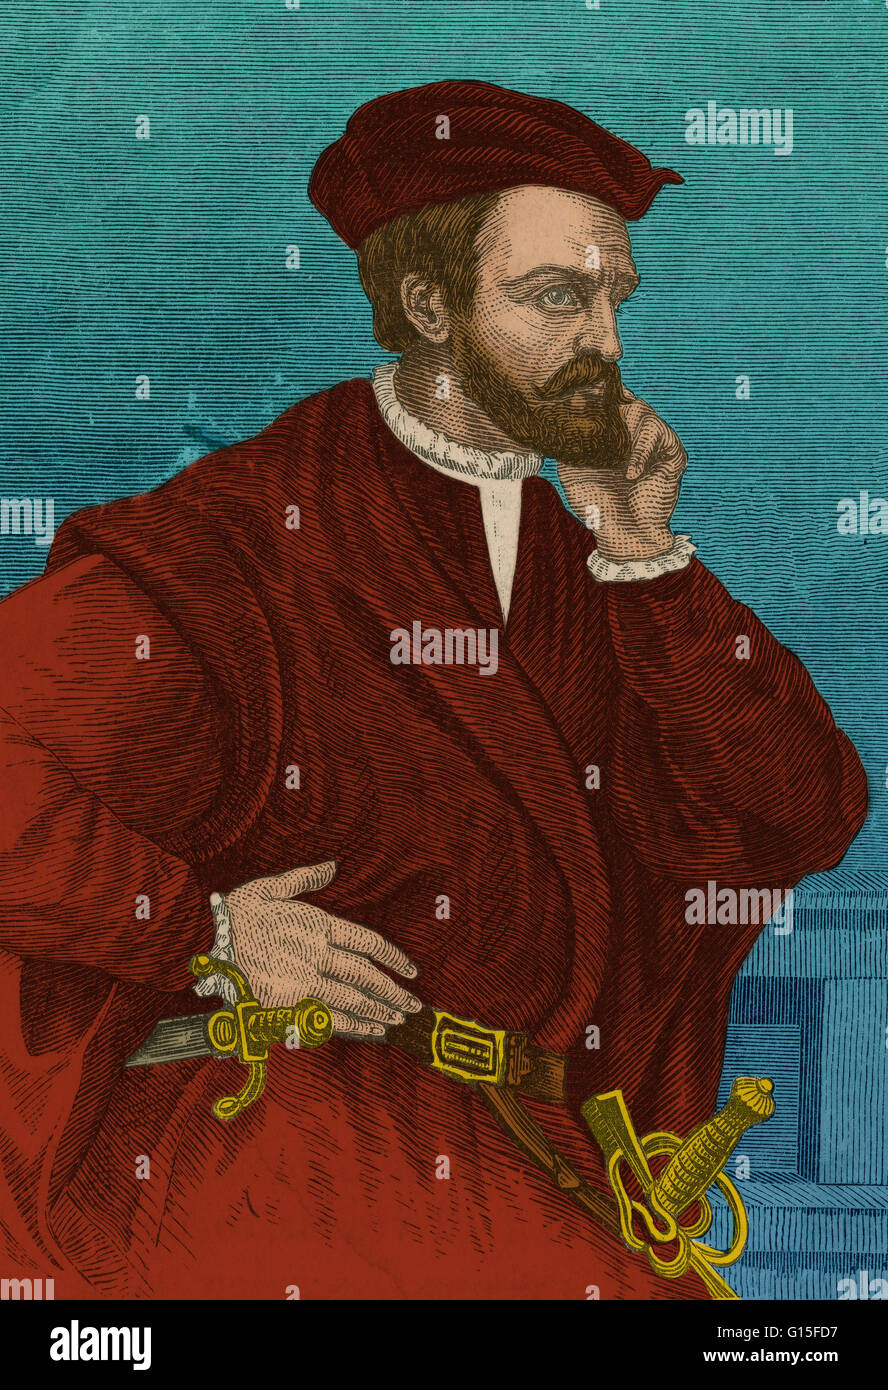 Jacques Cartier  1491 1557  was a French explorer who claimed Canada     Jacques Cartier  1491 1557  was a French explorer who claimed Canada for  France  He was the first European to describe and map the Gulf of Saint  Lawrence